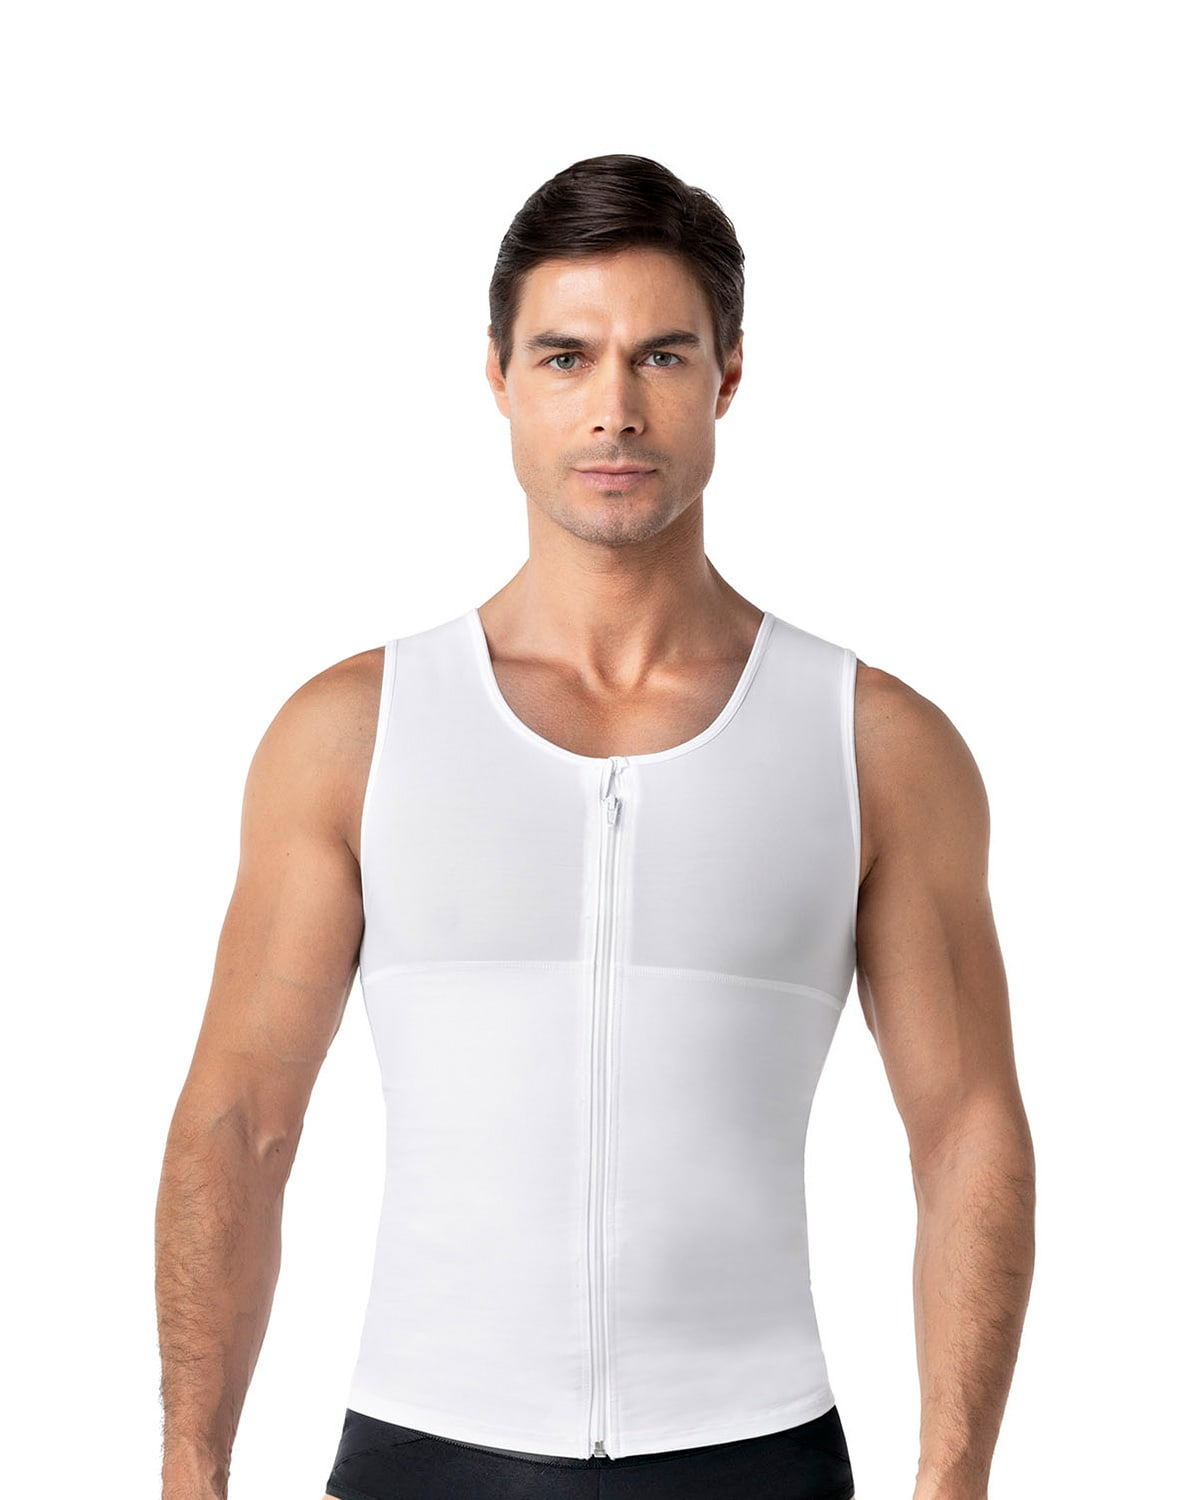 Men's Firm Body Shaper Vest with Back Support - Max/Force